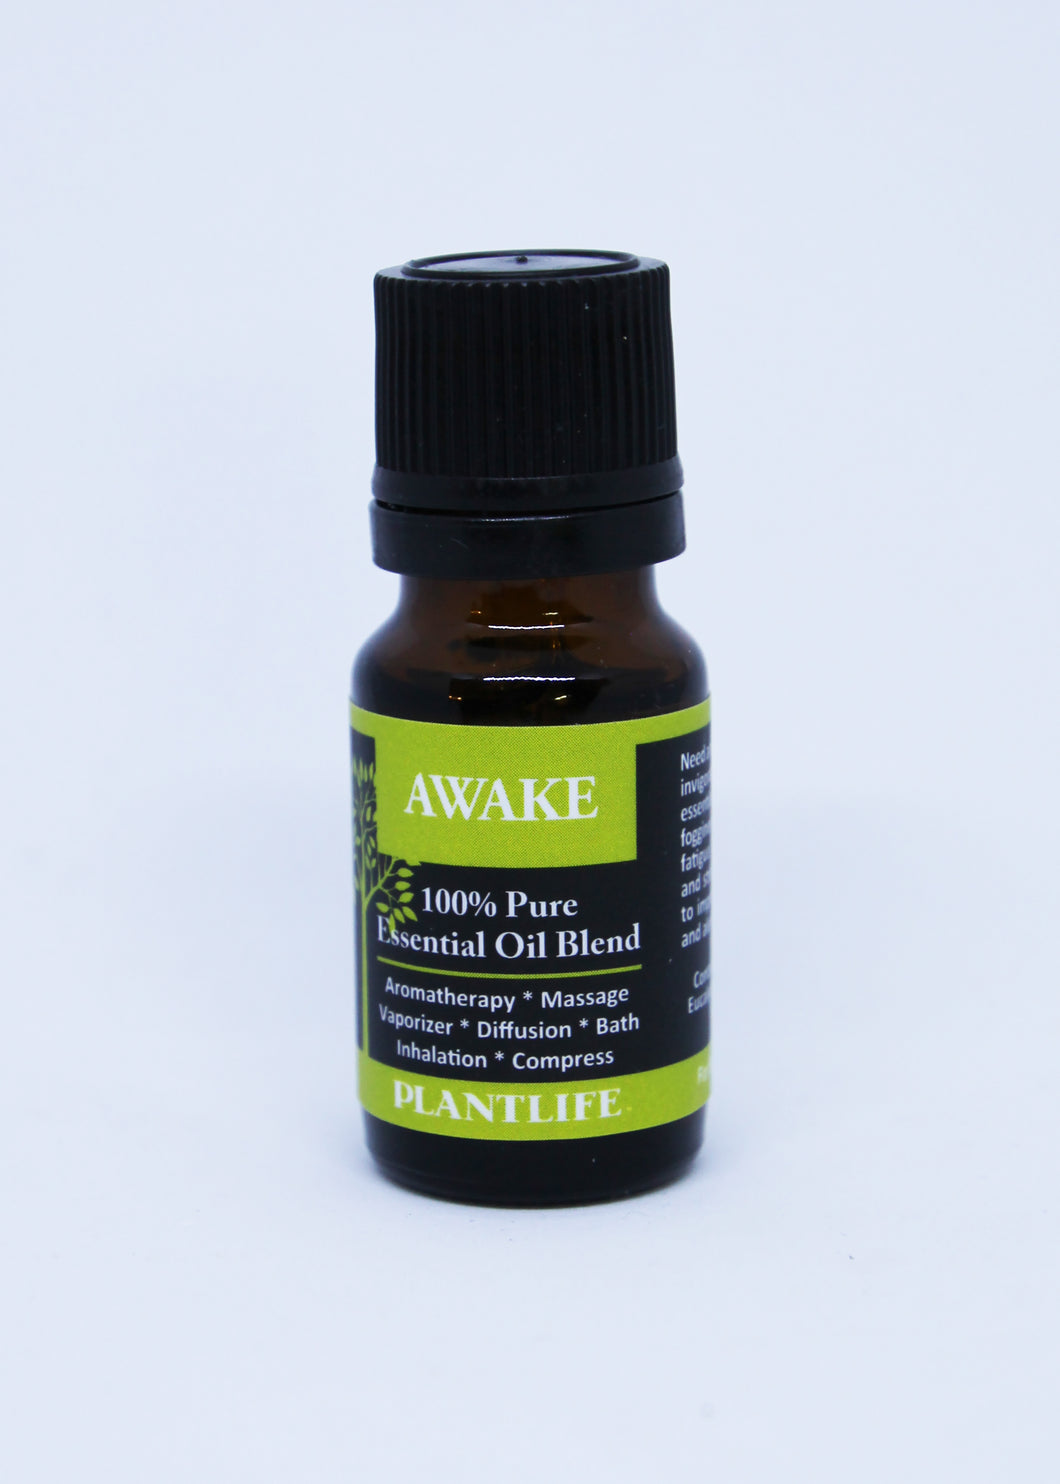 Awake - Essential Oil